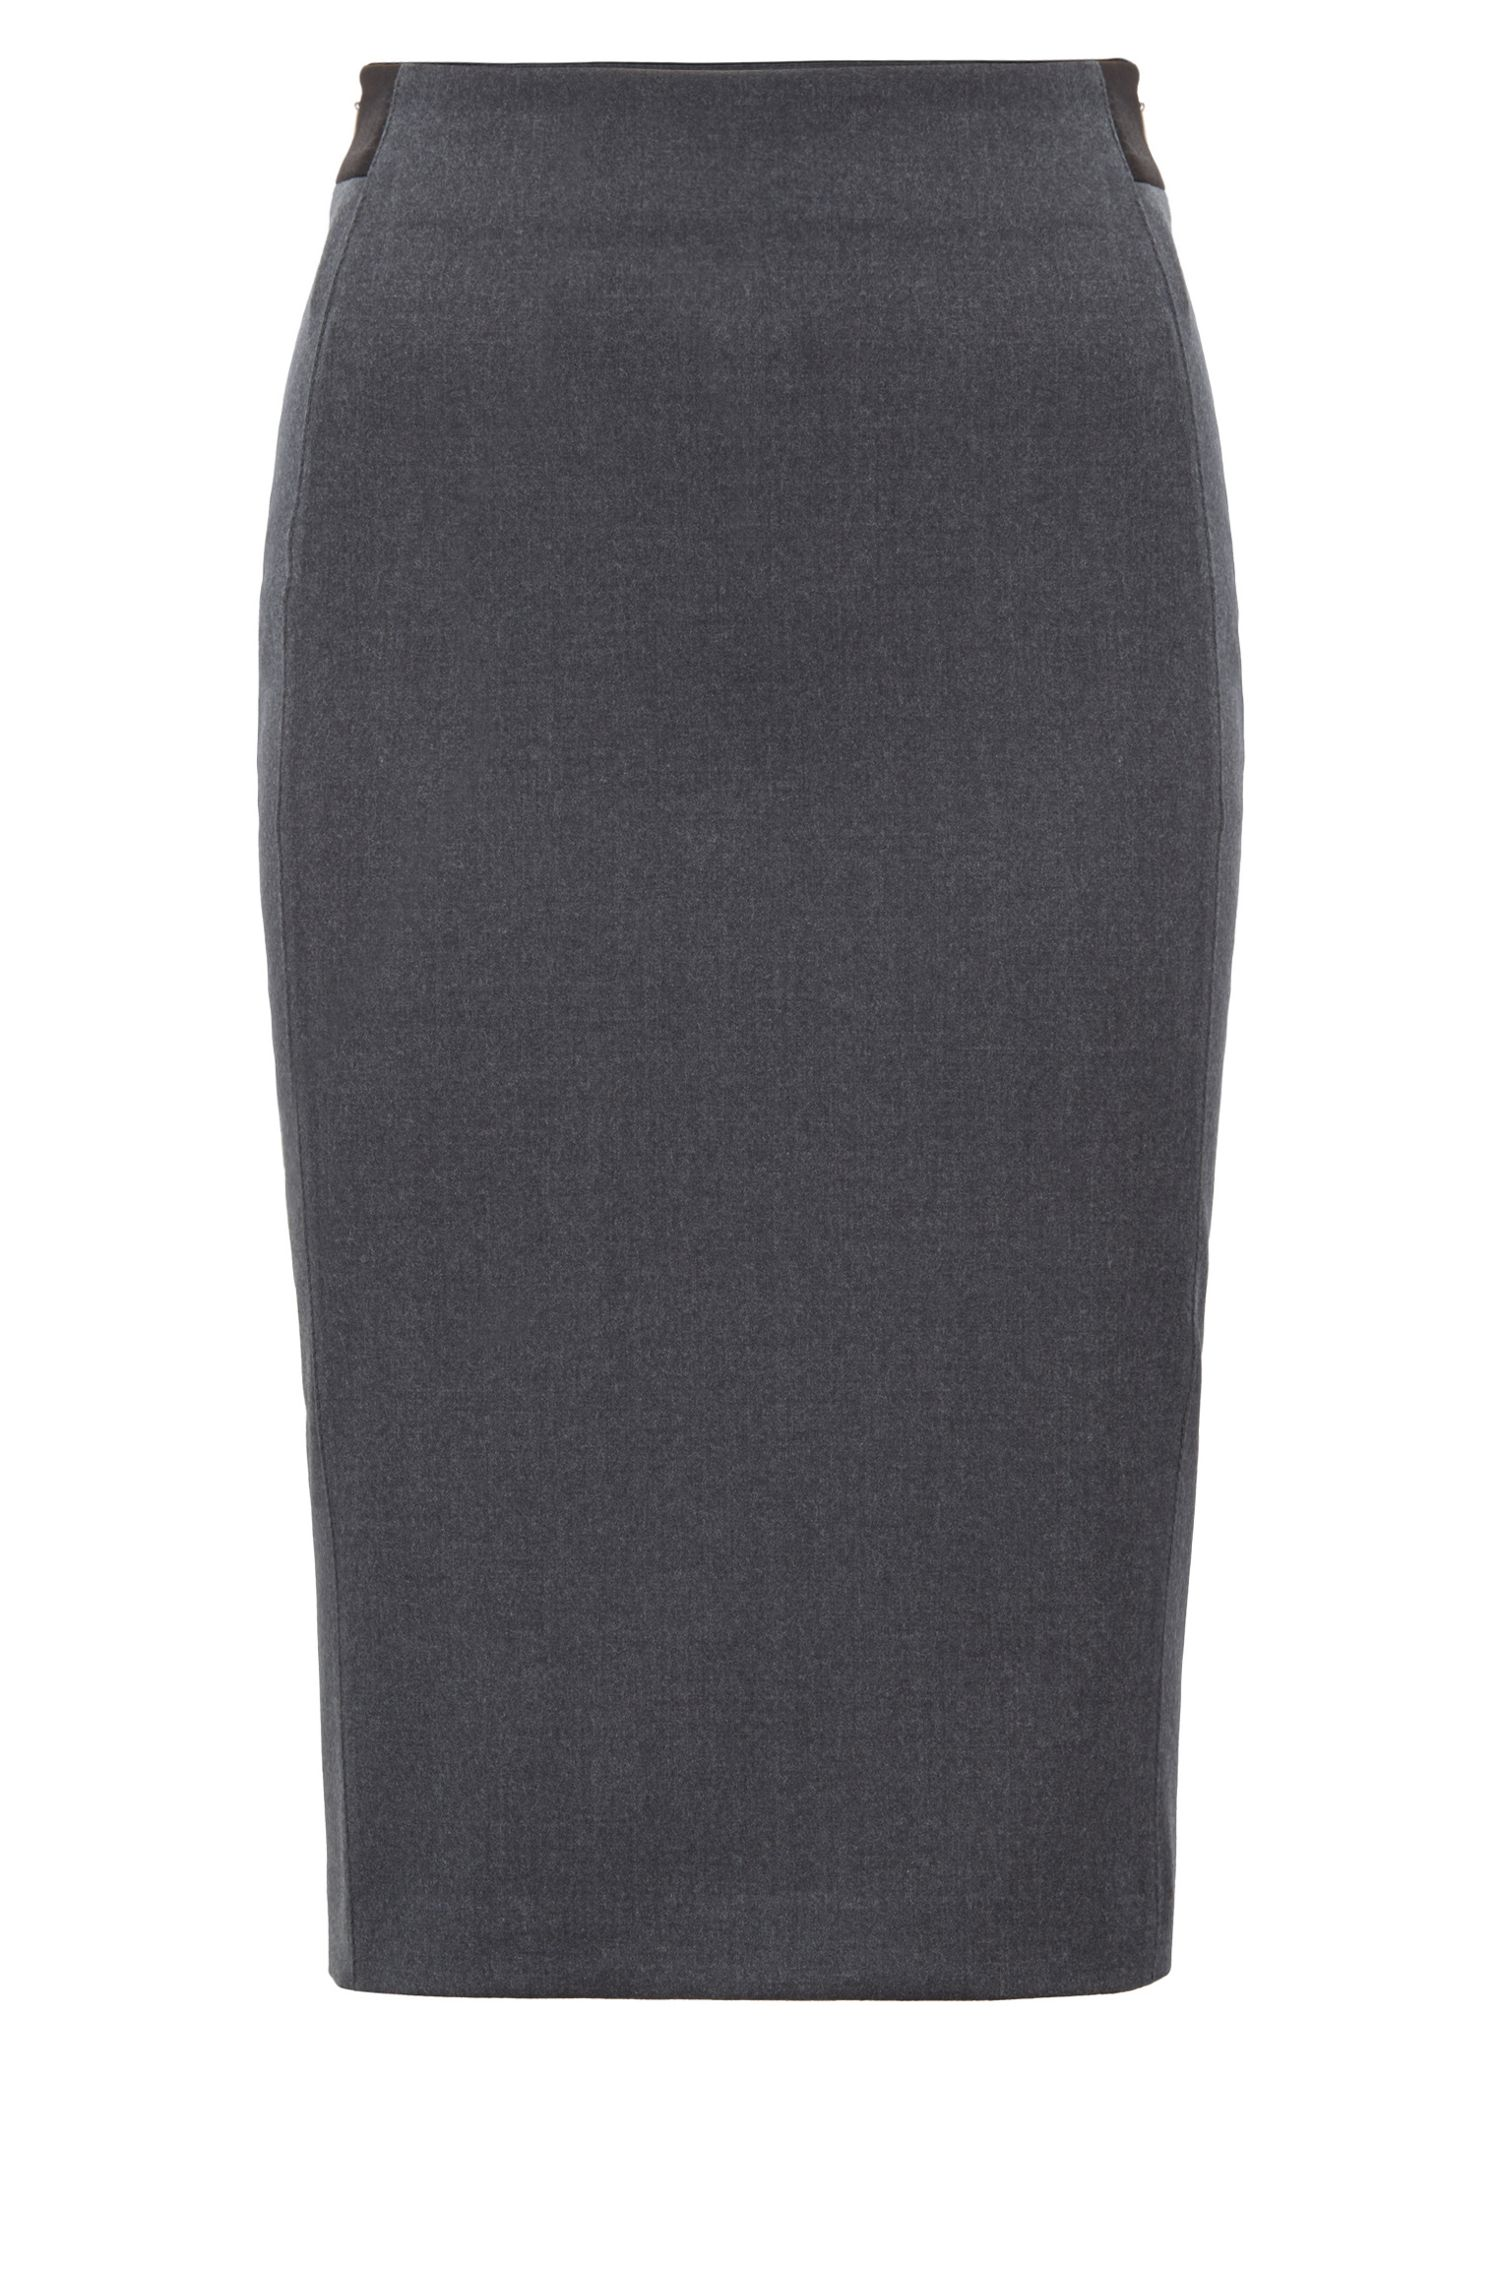 Regular-fit pencil skirt in stretch virgin wool melange, Charcoal